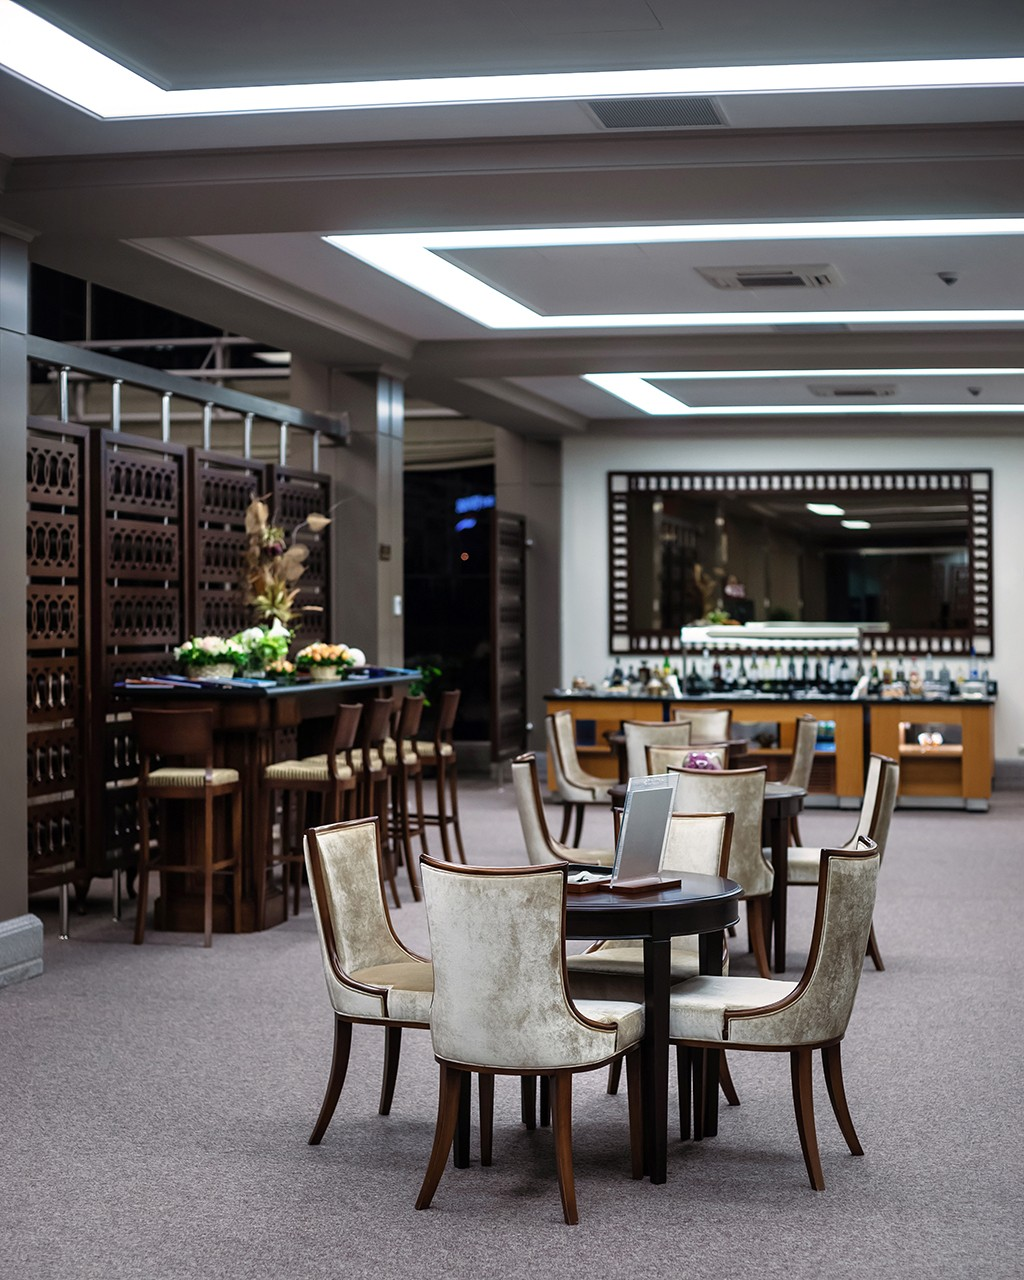 Gallery of the interior photographer. Restaurant at the airport.